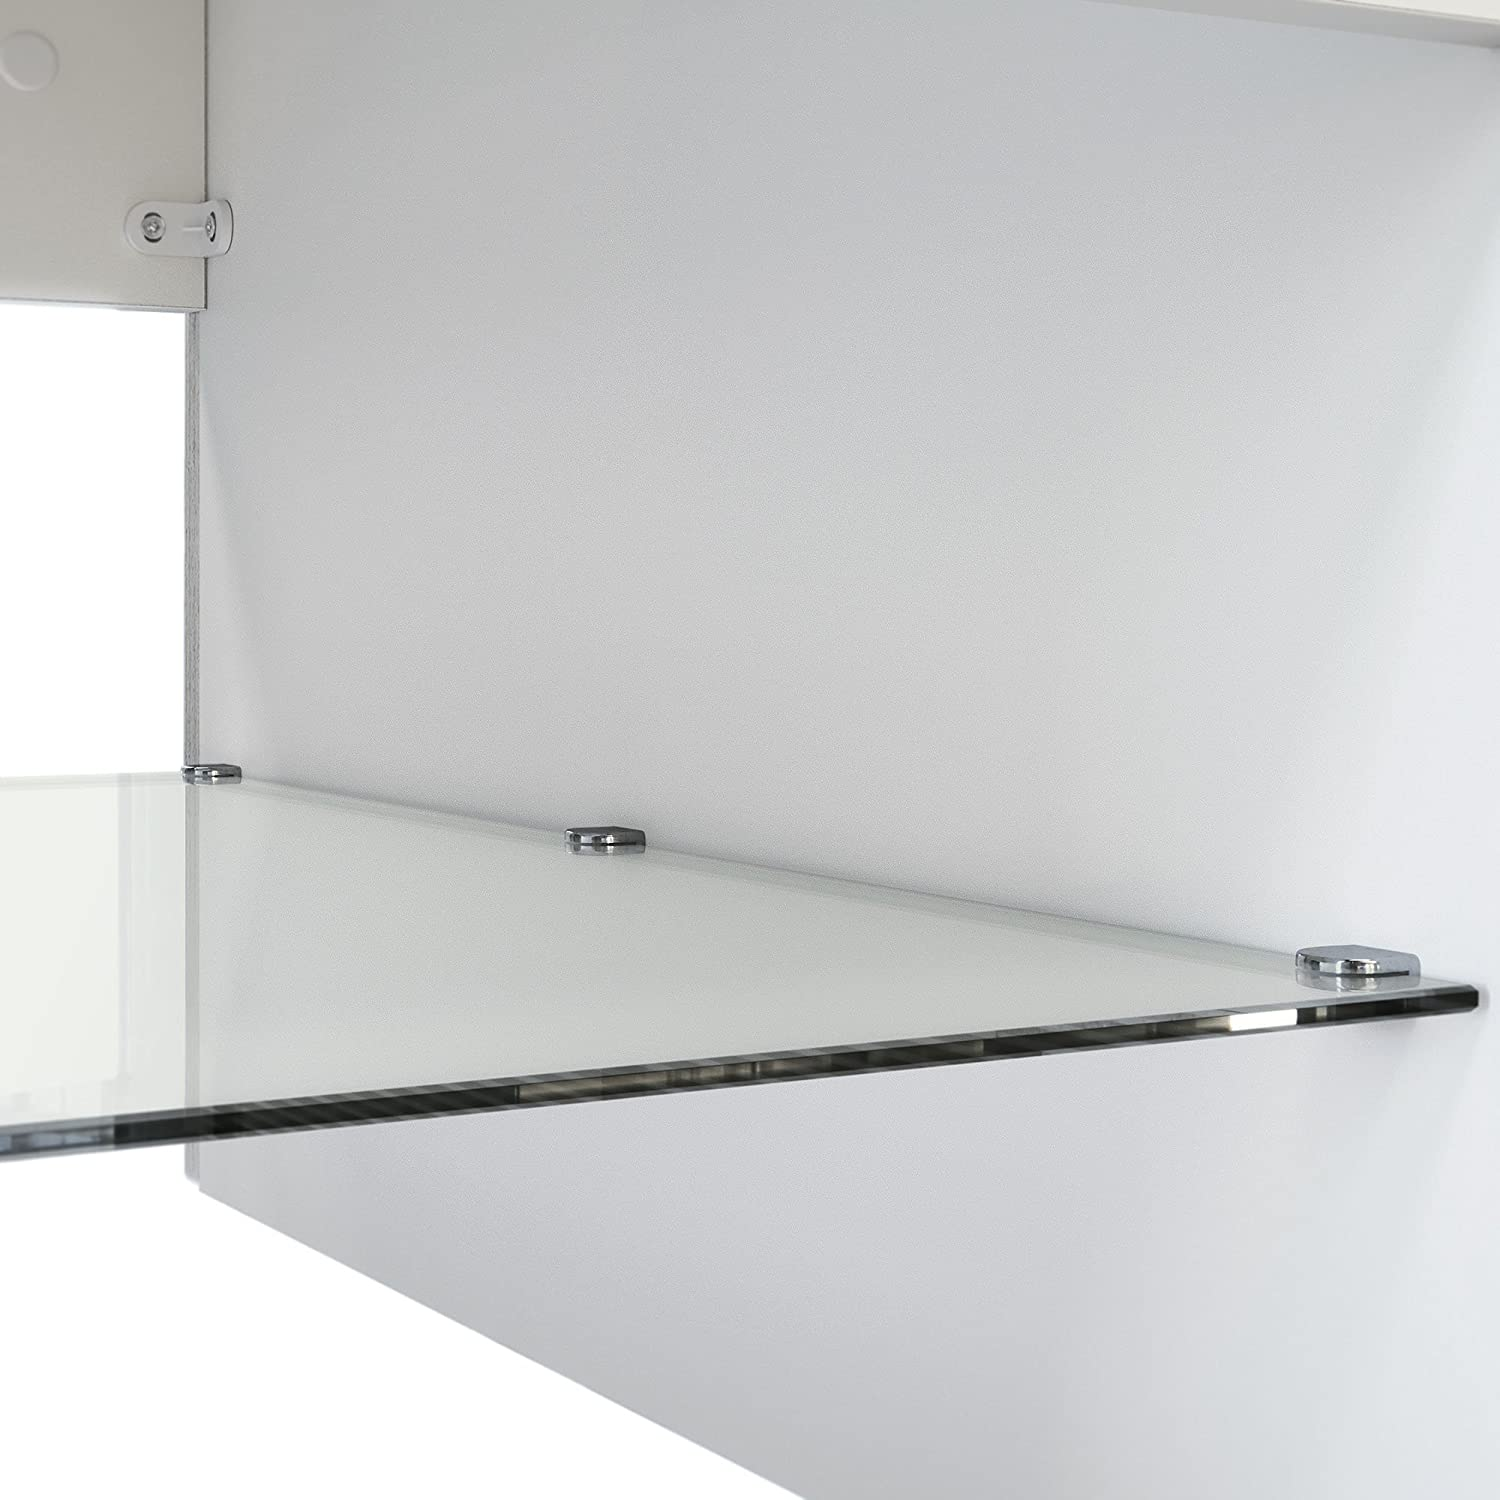 Vladon Coffee Table Side Table Clip in White with Offsets in Grey High Gloss